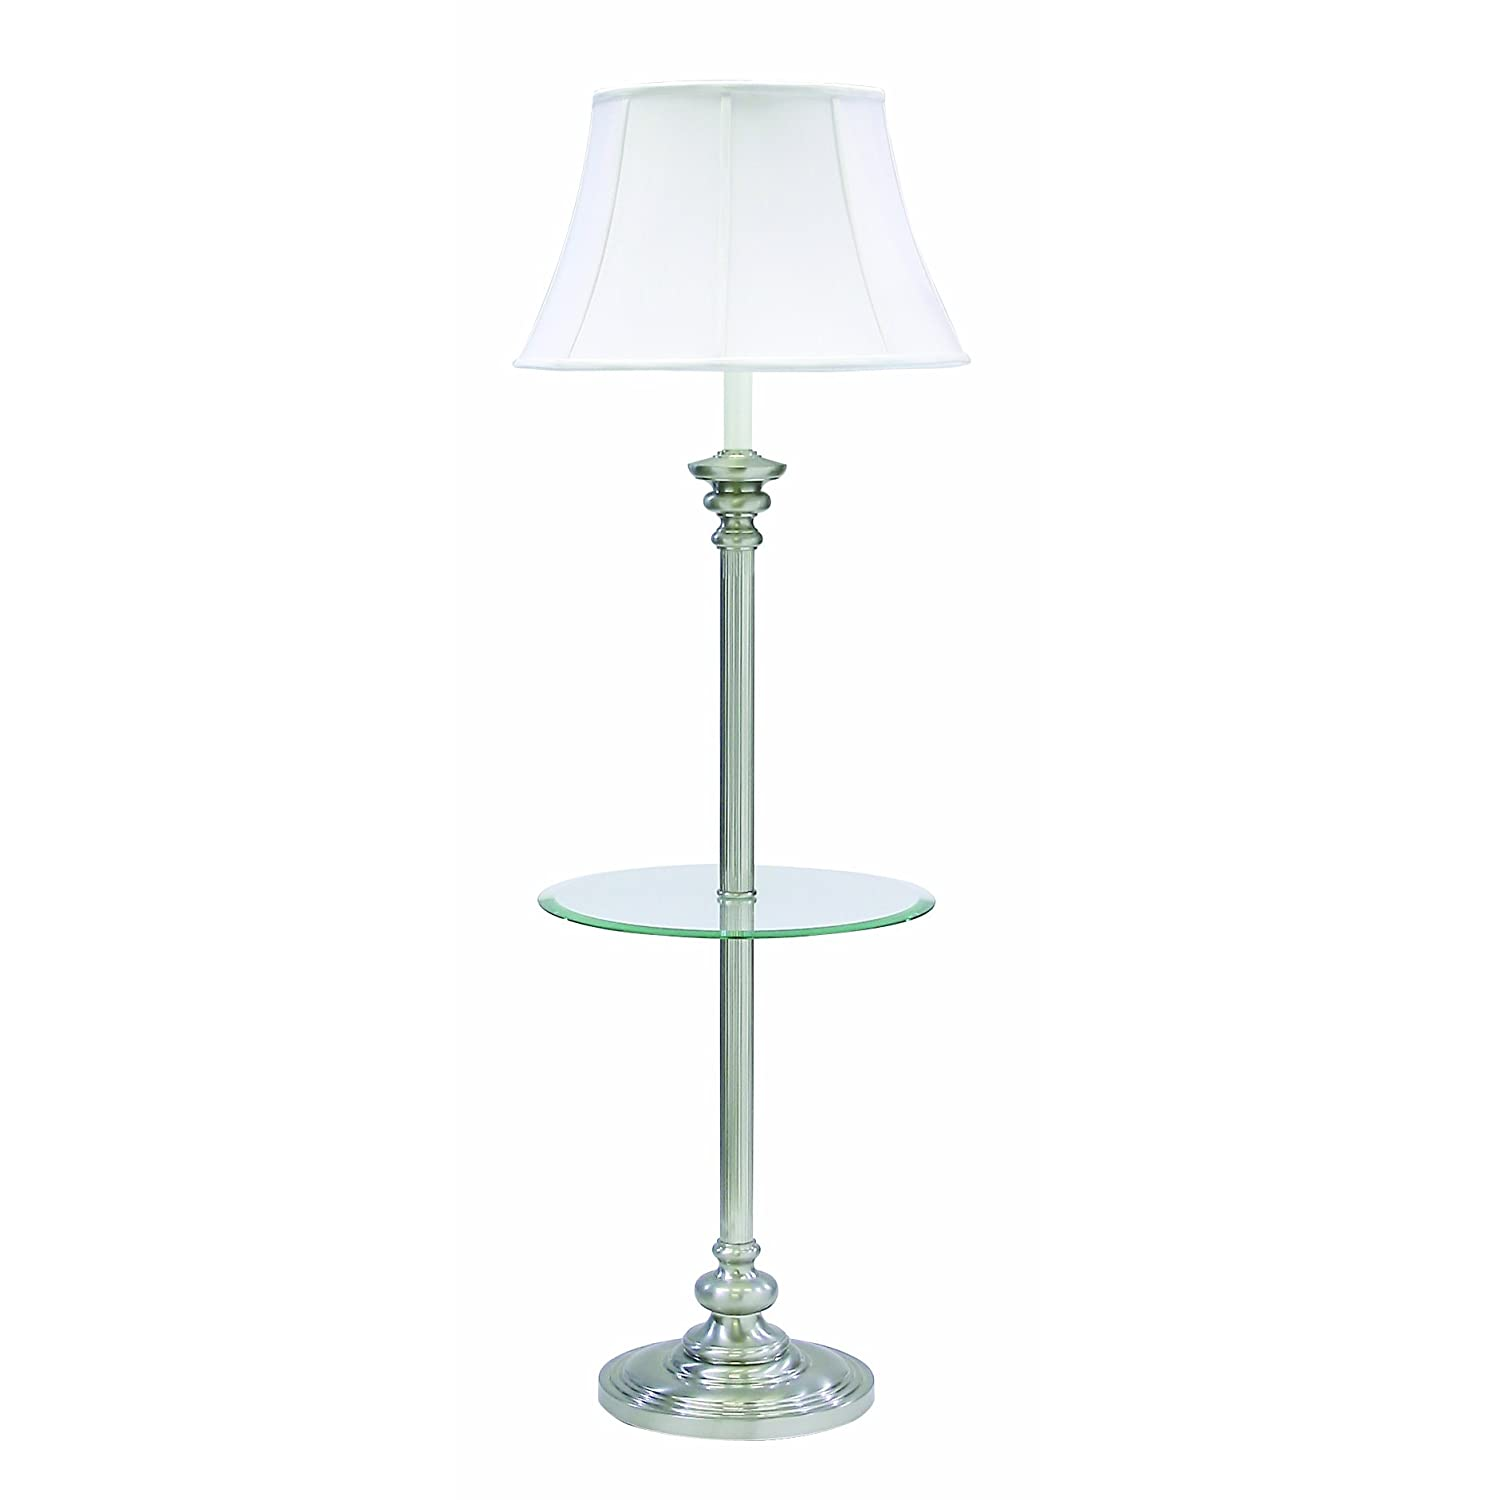 floor lamp with table pewter with off white softback shade check. Black Bedroom Furniture Sets. Home Design Ideas